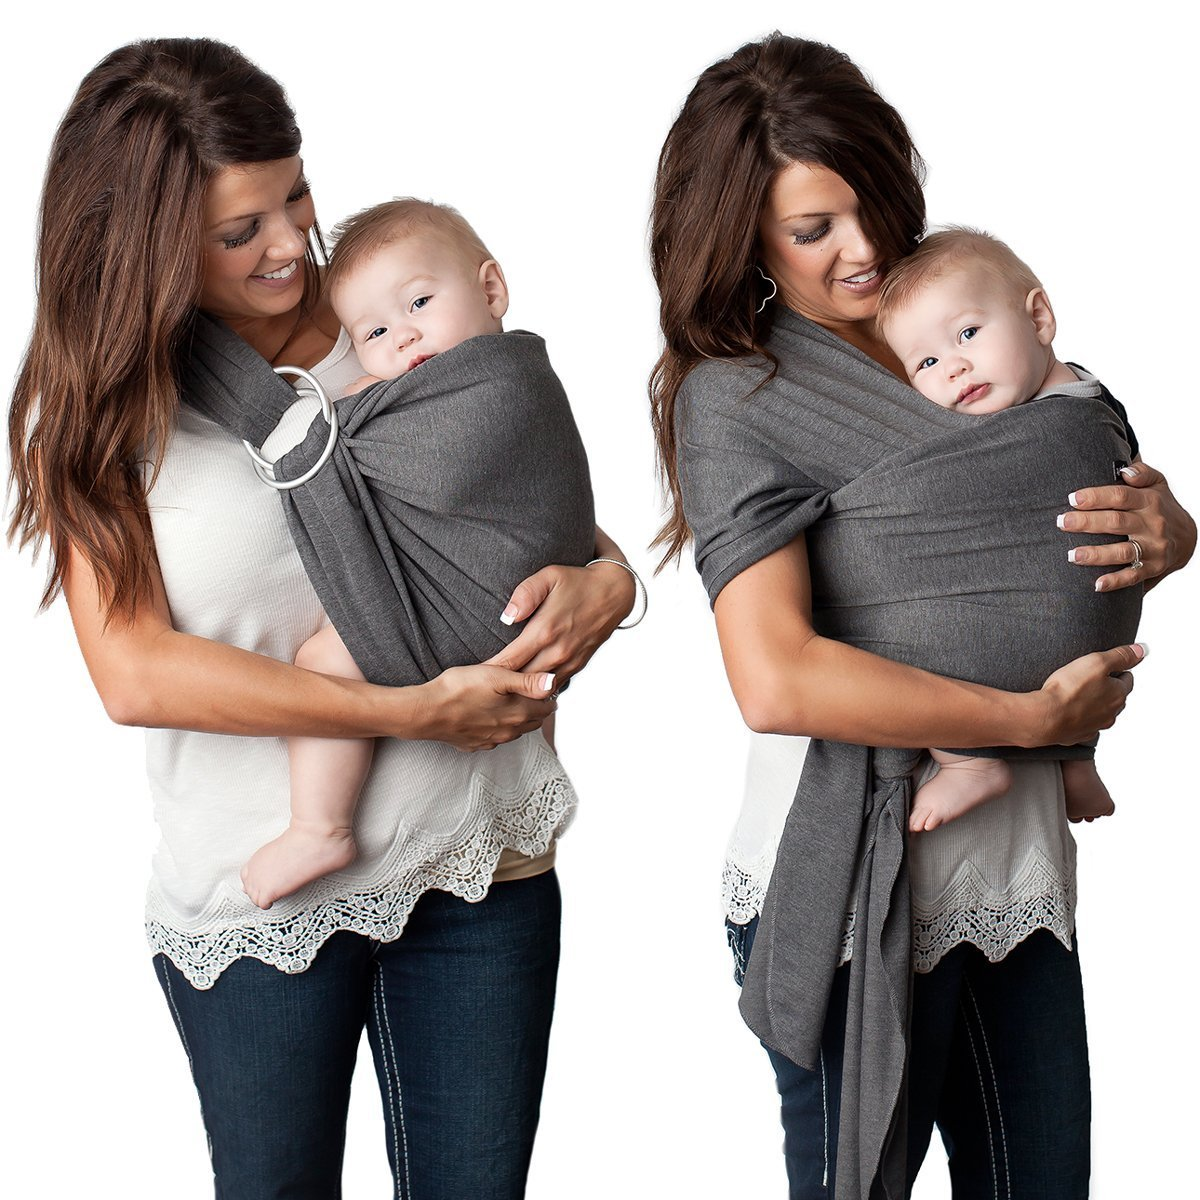 c248051fa94 Best Rated in Child Carrier Slings   Helpful Customer Reviews ...